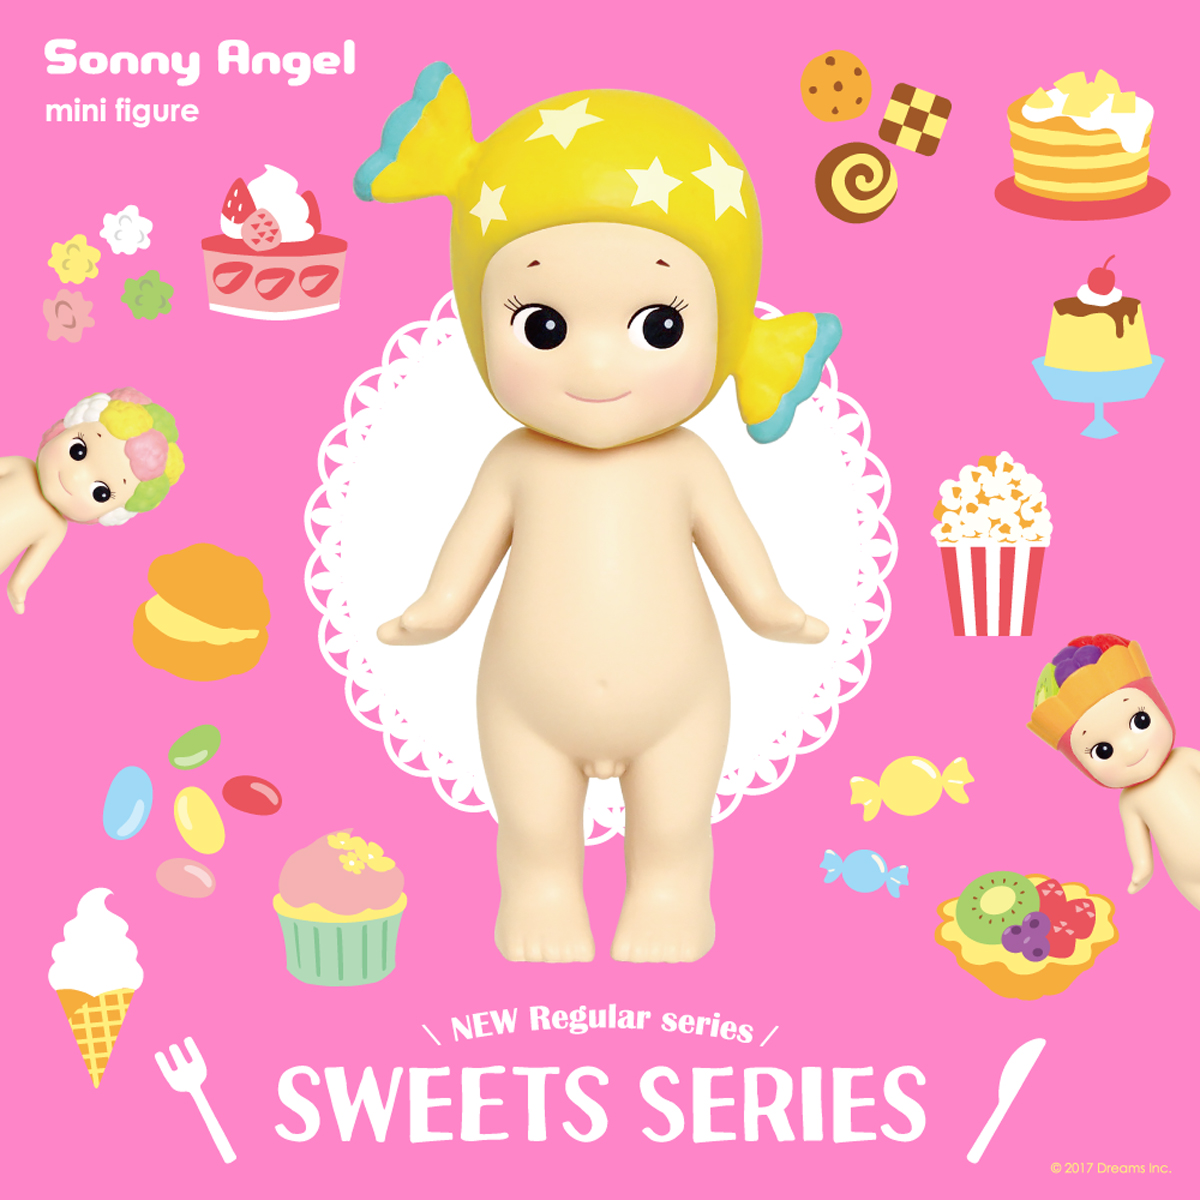 sonny angel nouvelle serie sweets 2018